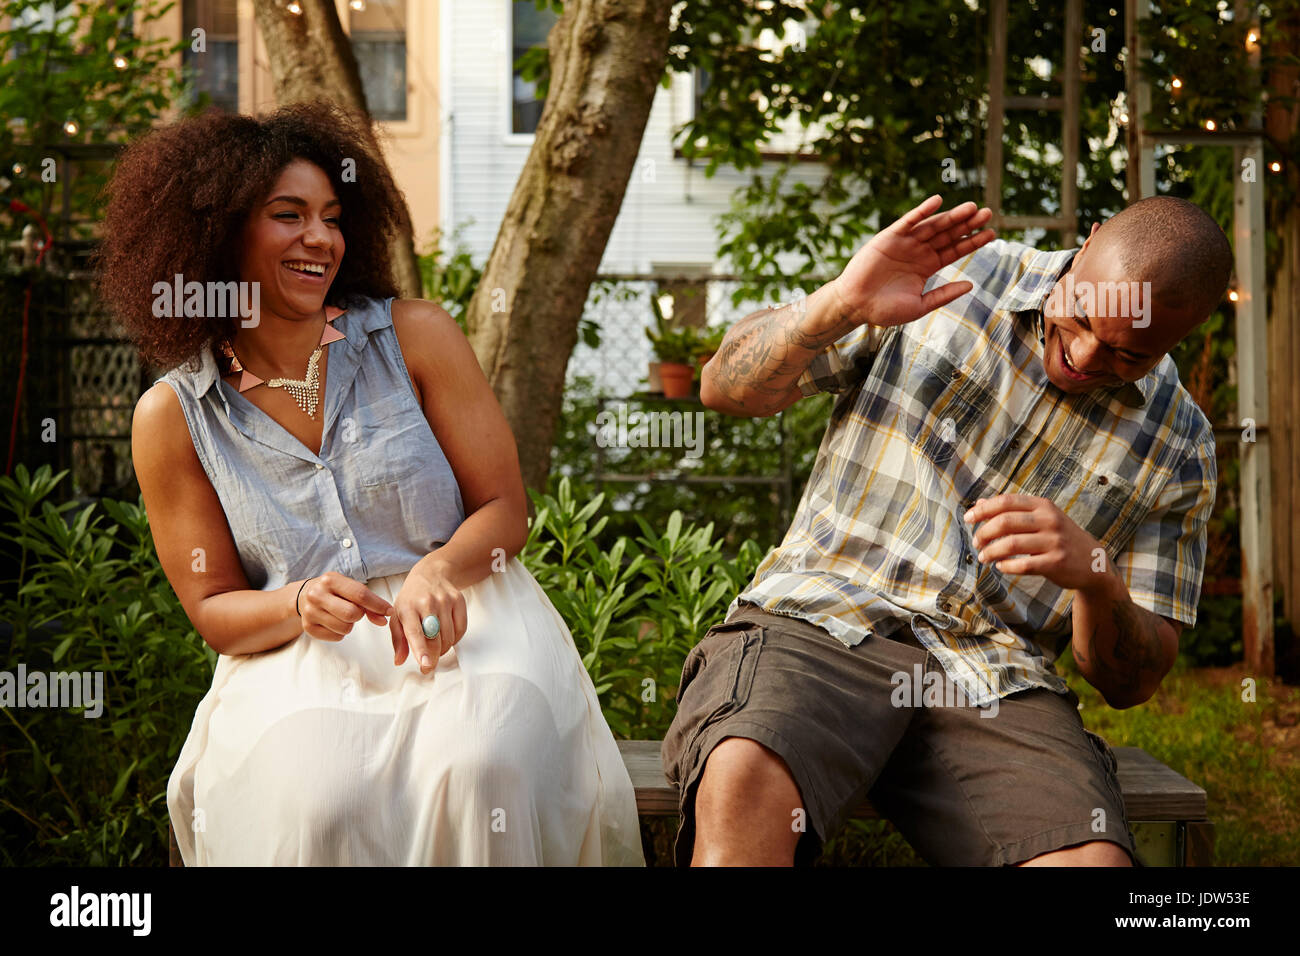 Mid adult man laughing with woman at garden party Stock Photo